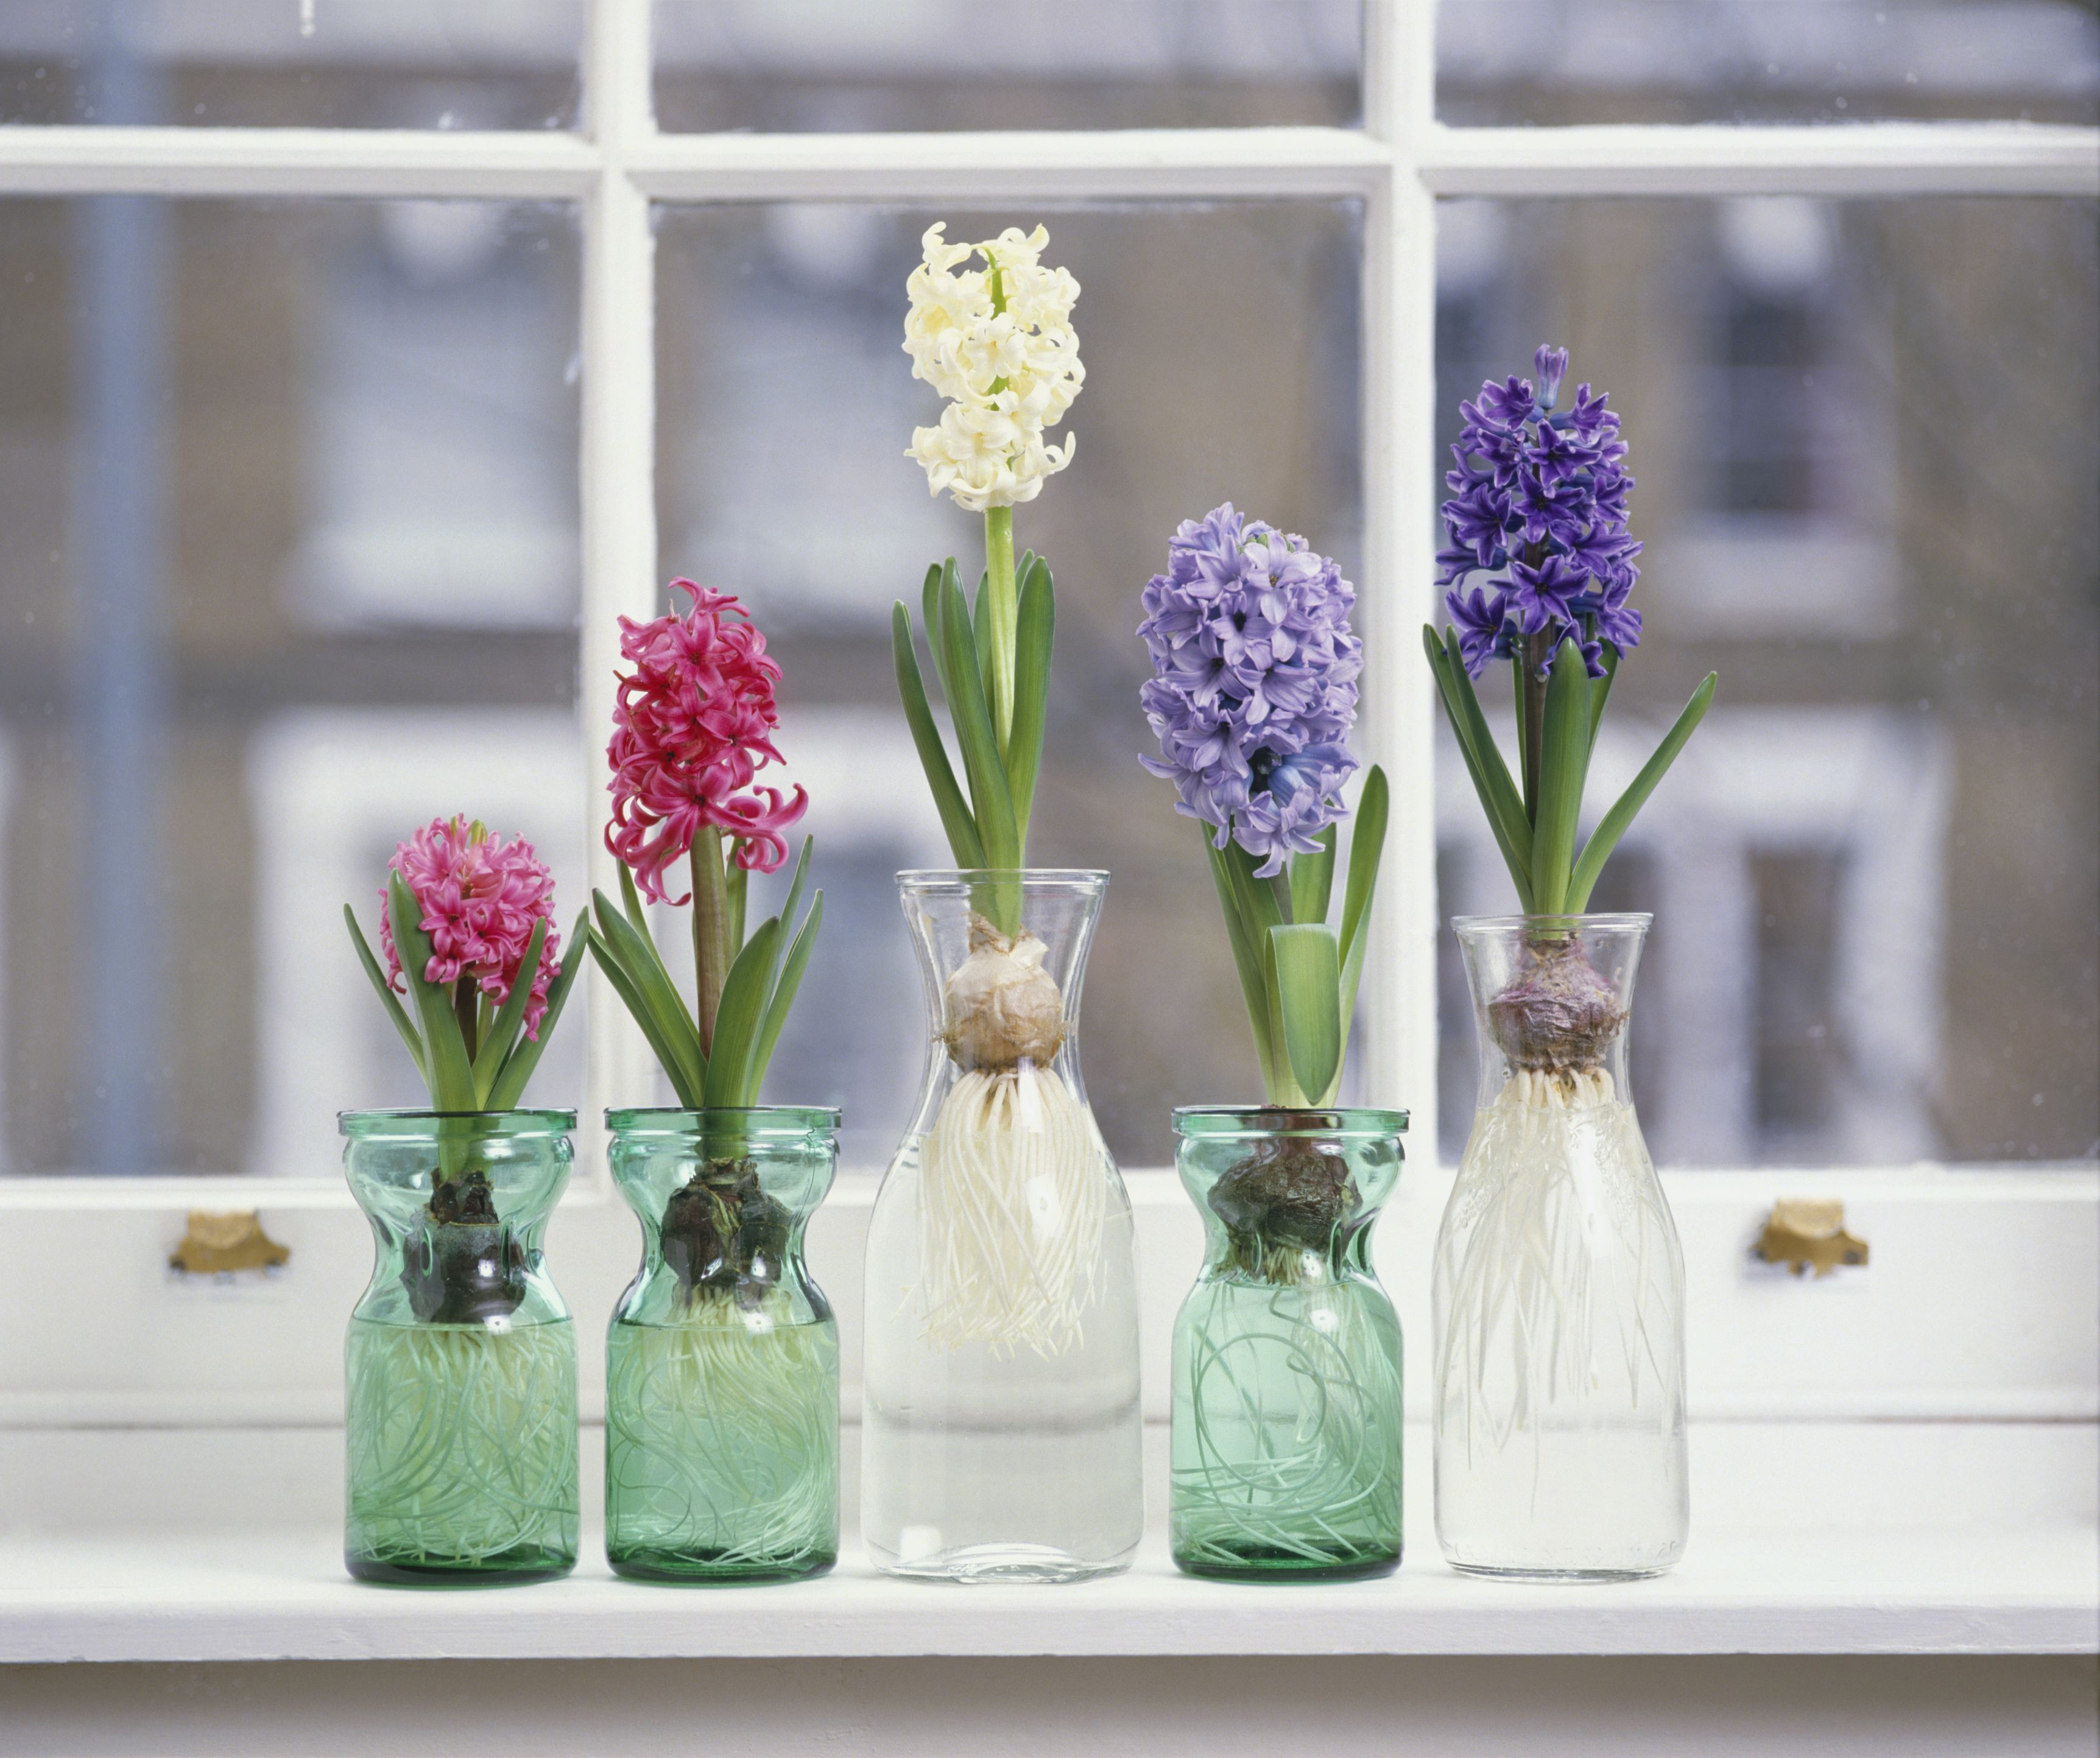 15 Amazing Hyacinth forcing Vase 2021 free download hyacinth forcing vase of how to grow hyacinth flowers indoors regarding pink white and purple hyacinthus plants with bulbs in glass jars on window sill 125157739 57c5b8f73df78cc16ead76eb